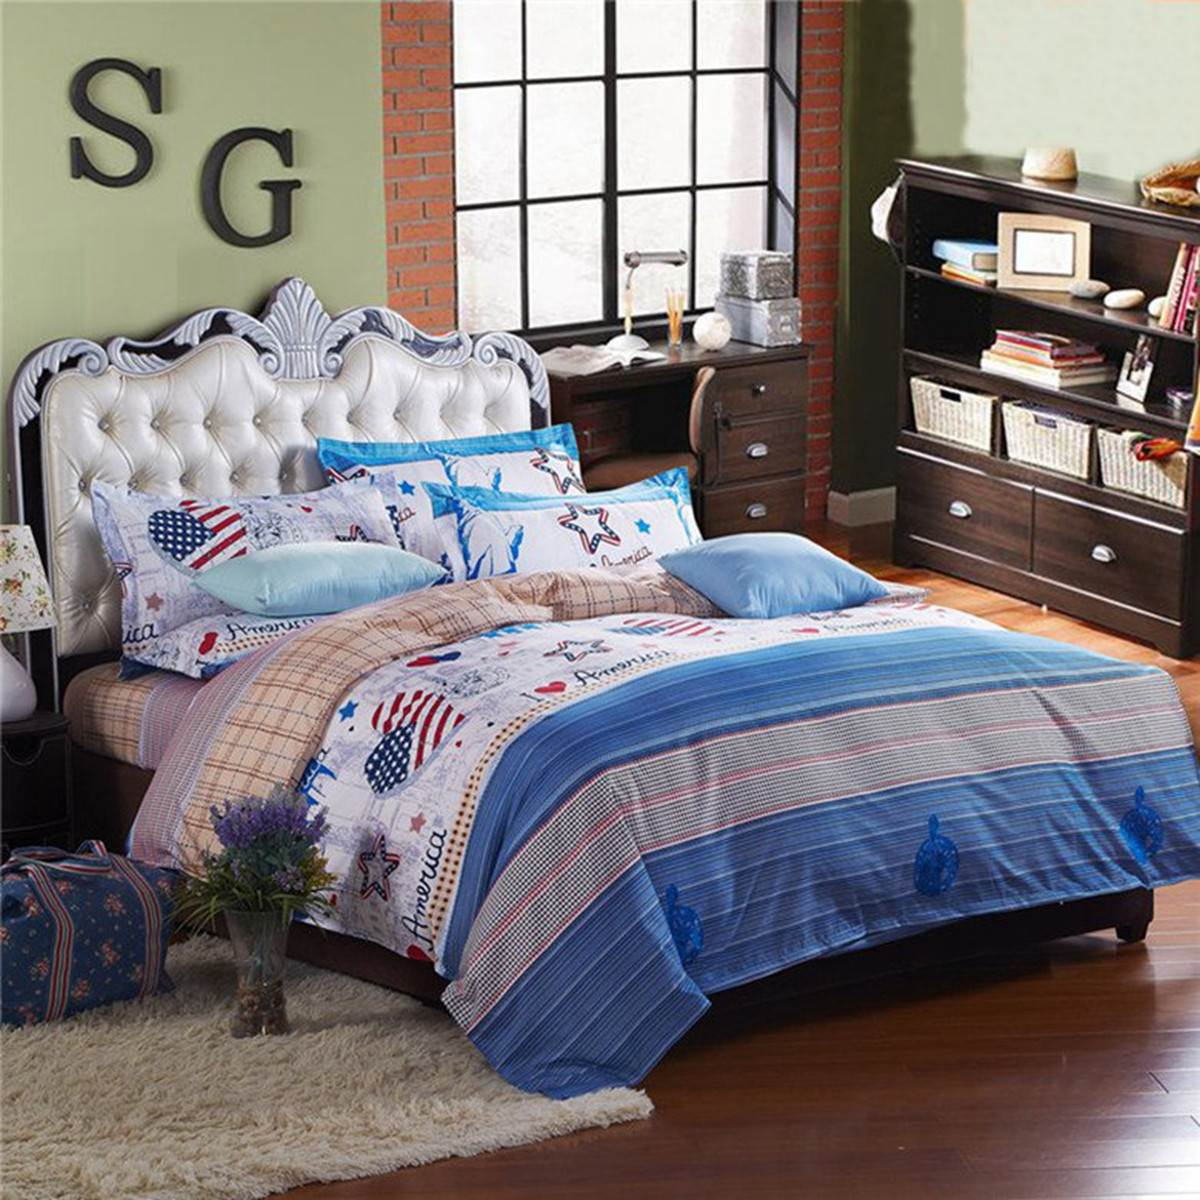 Bed sheet set with quilt - Fashion Usa Heart Printed Bedding Sets American Party Single Double King Size Polyester Quilt Duvet Cover Pillowcases Bed Sheet